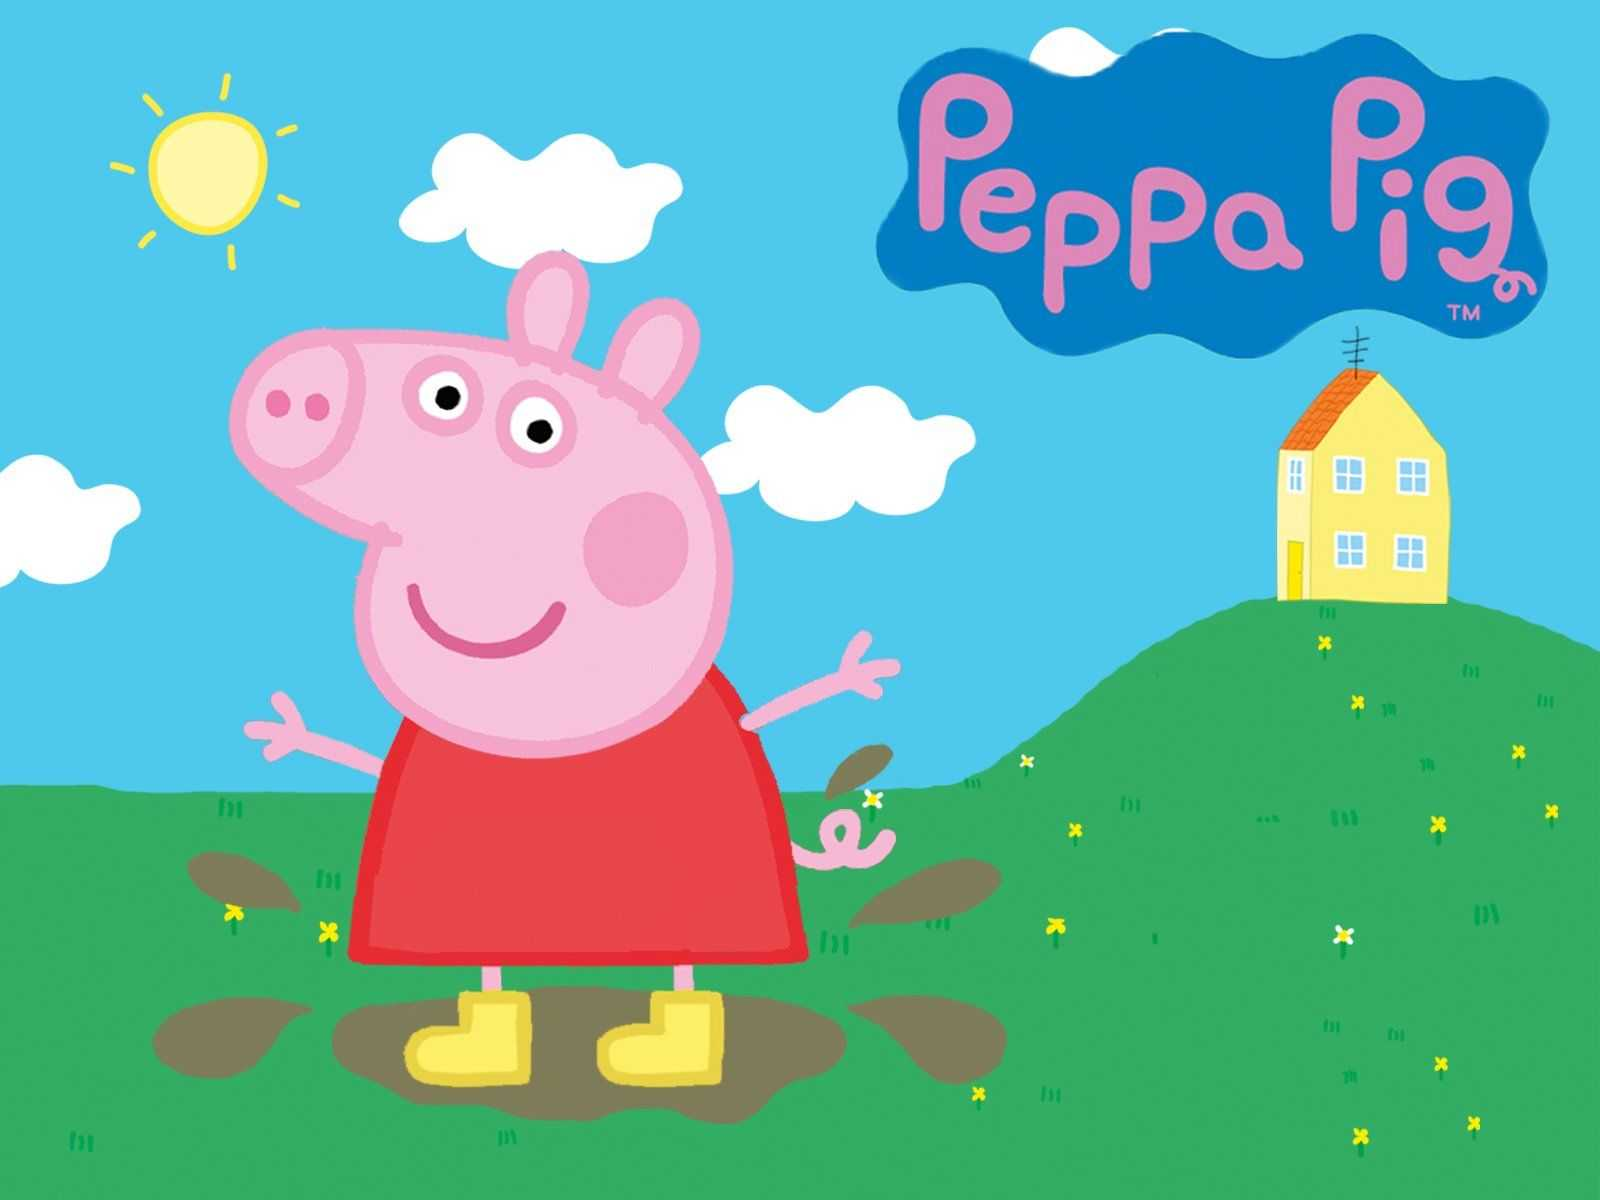 Peppa Pig House Wallpapers Top Free Peppa Pig House Backgrounds Wallpaperaccess